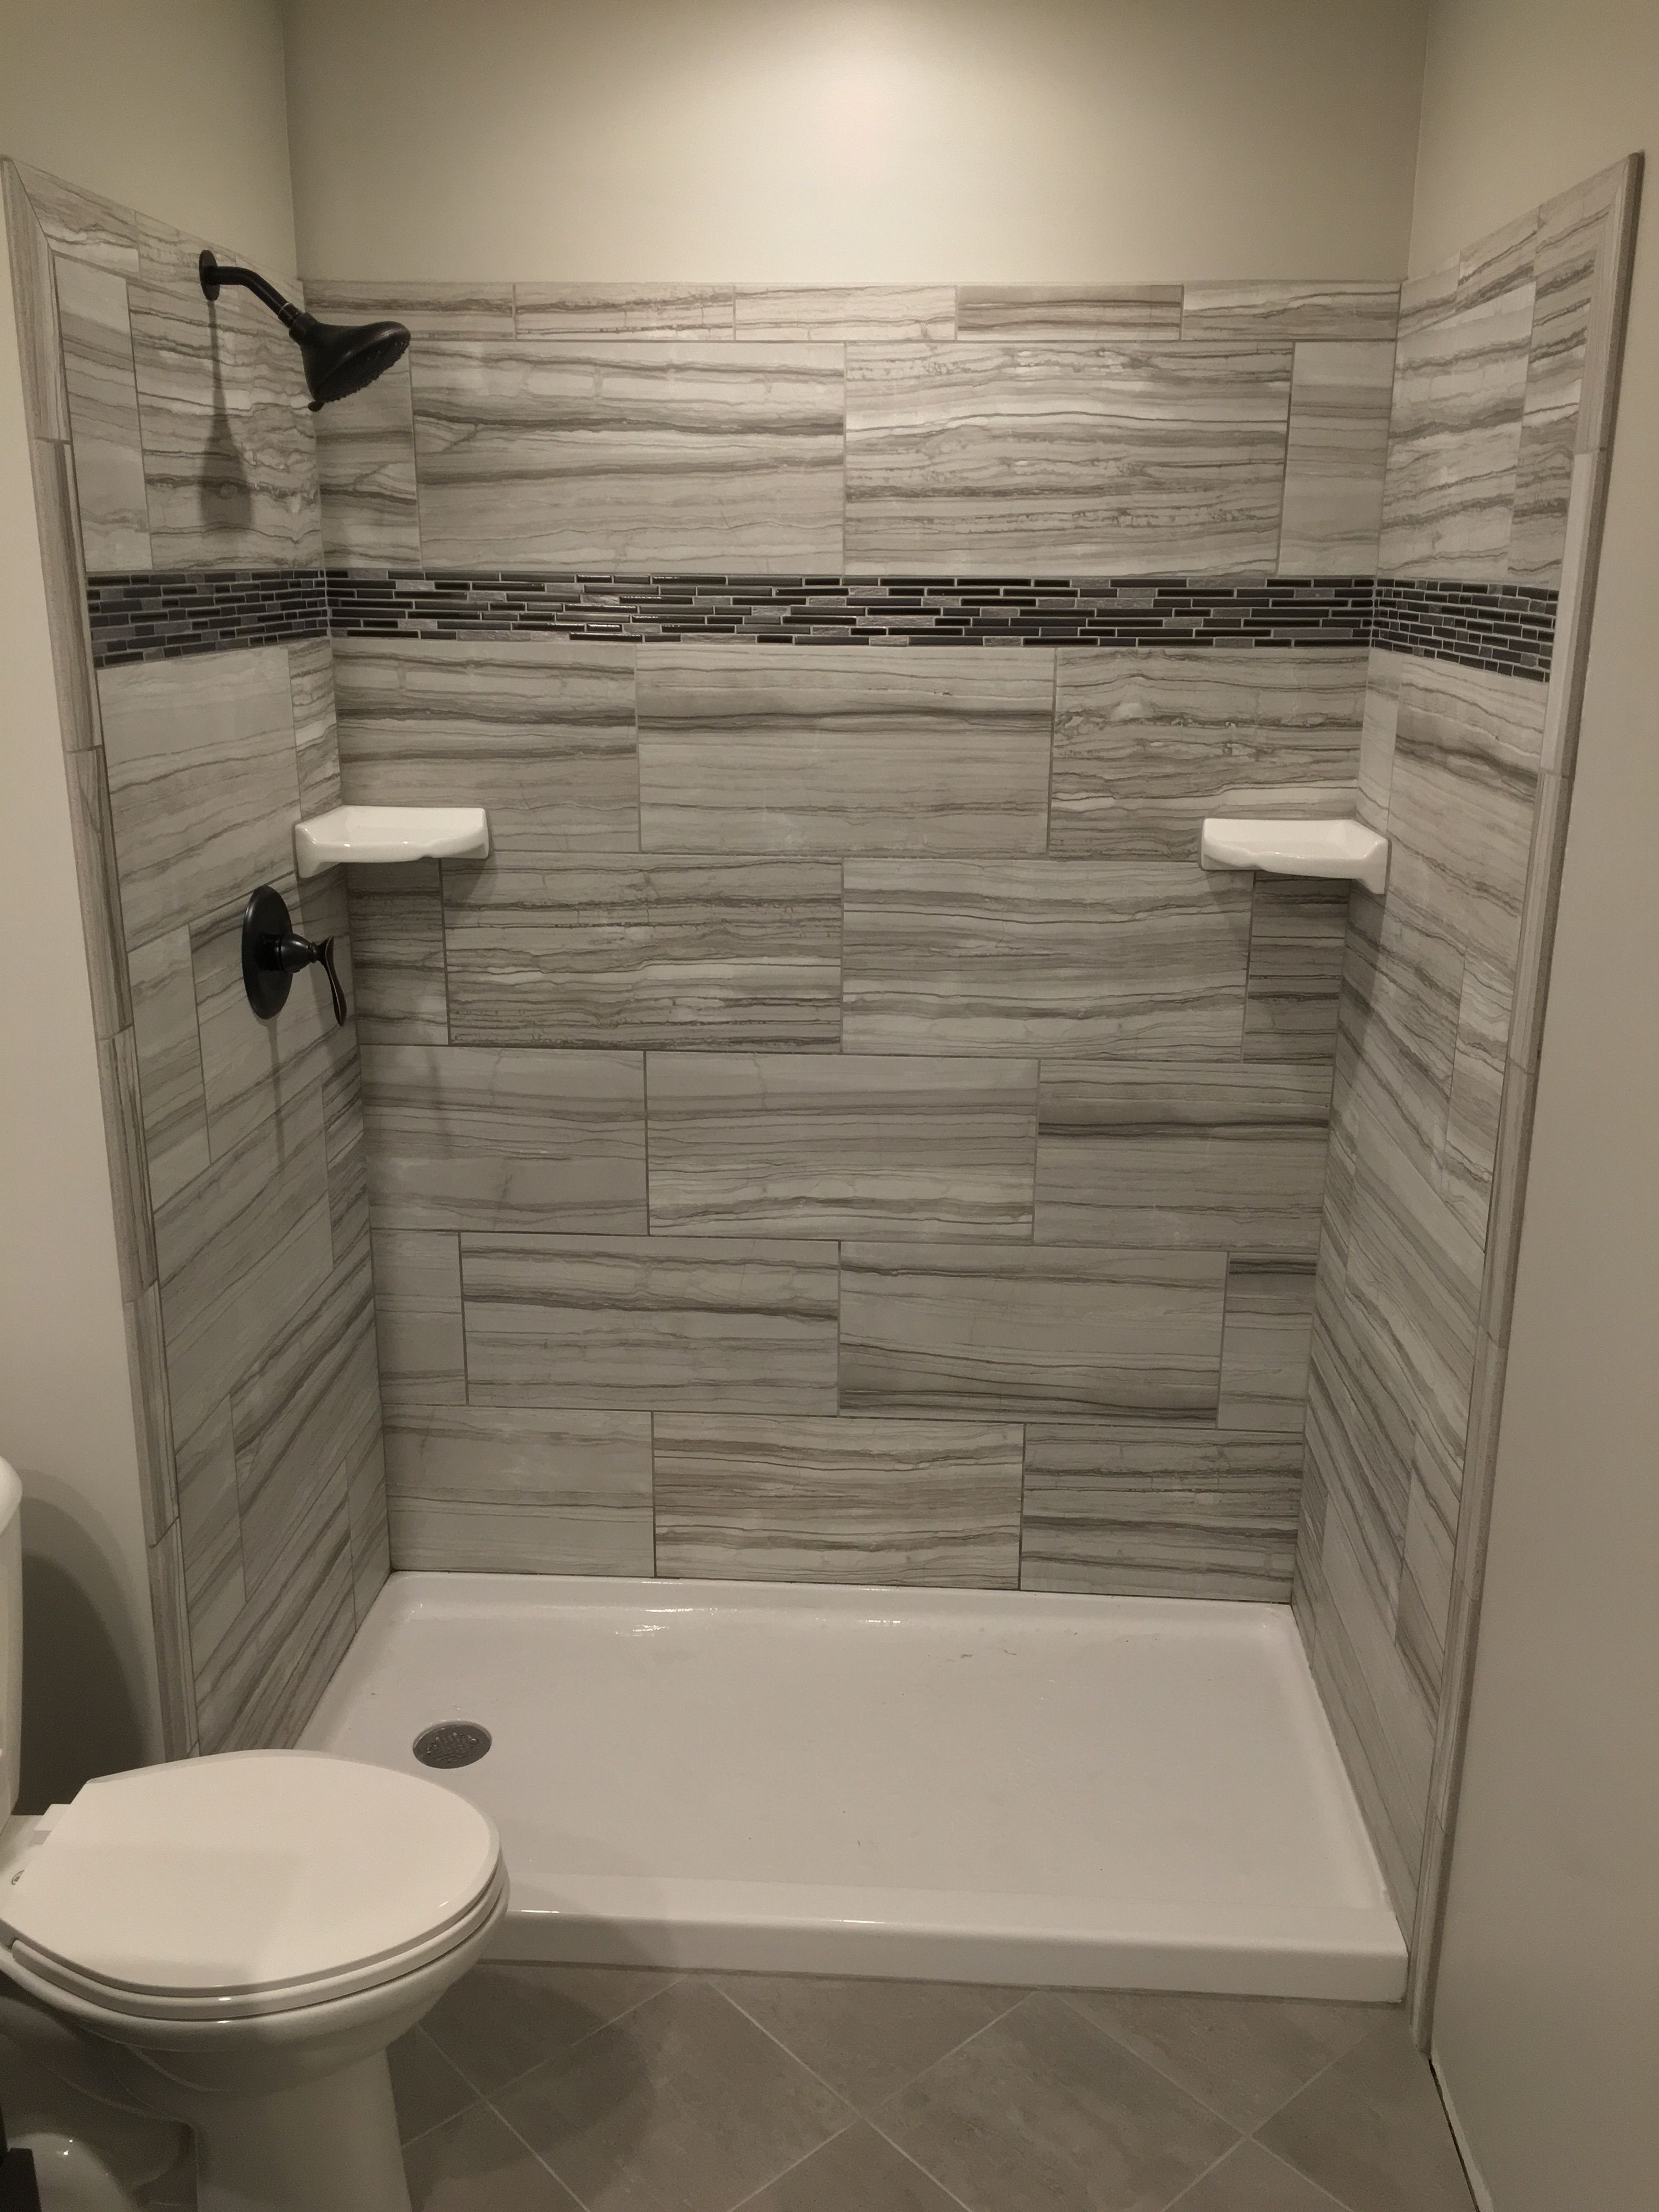 Tile shower Grigio from Home Depot | Bathroom in 2019 ...